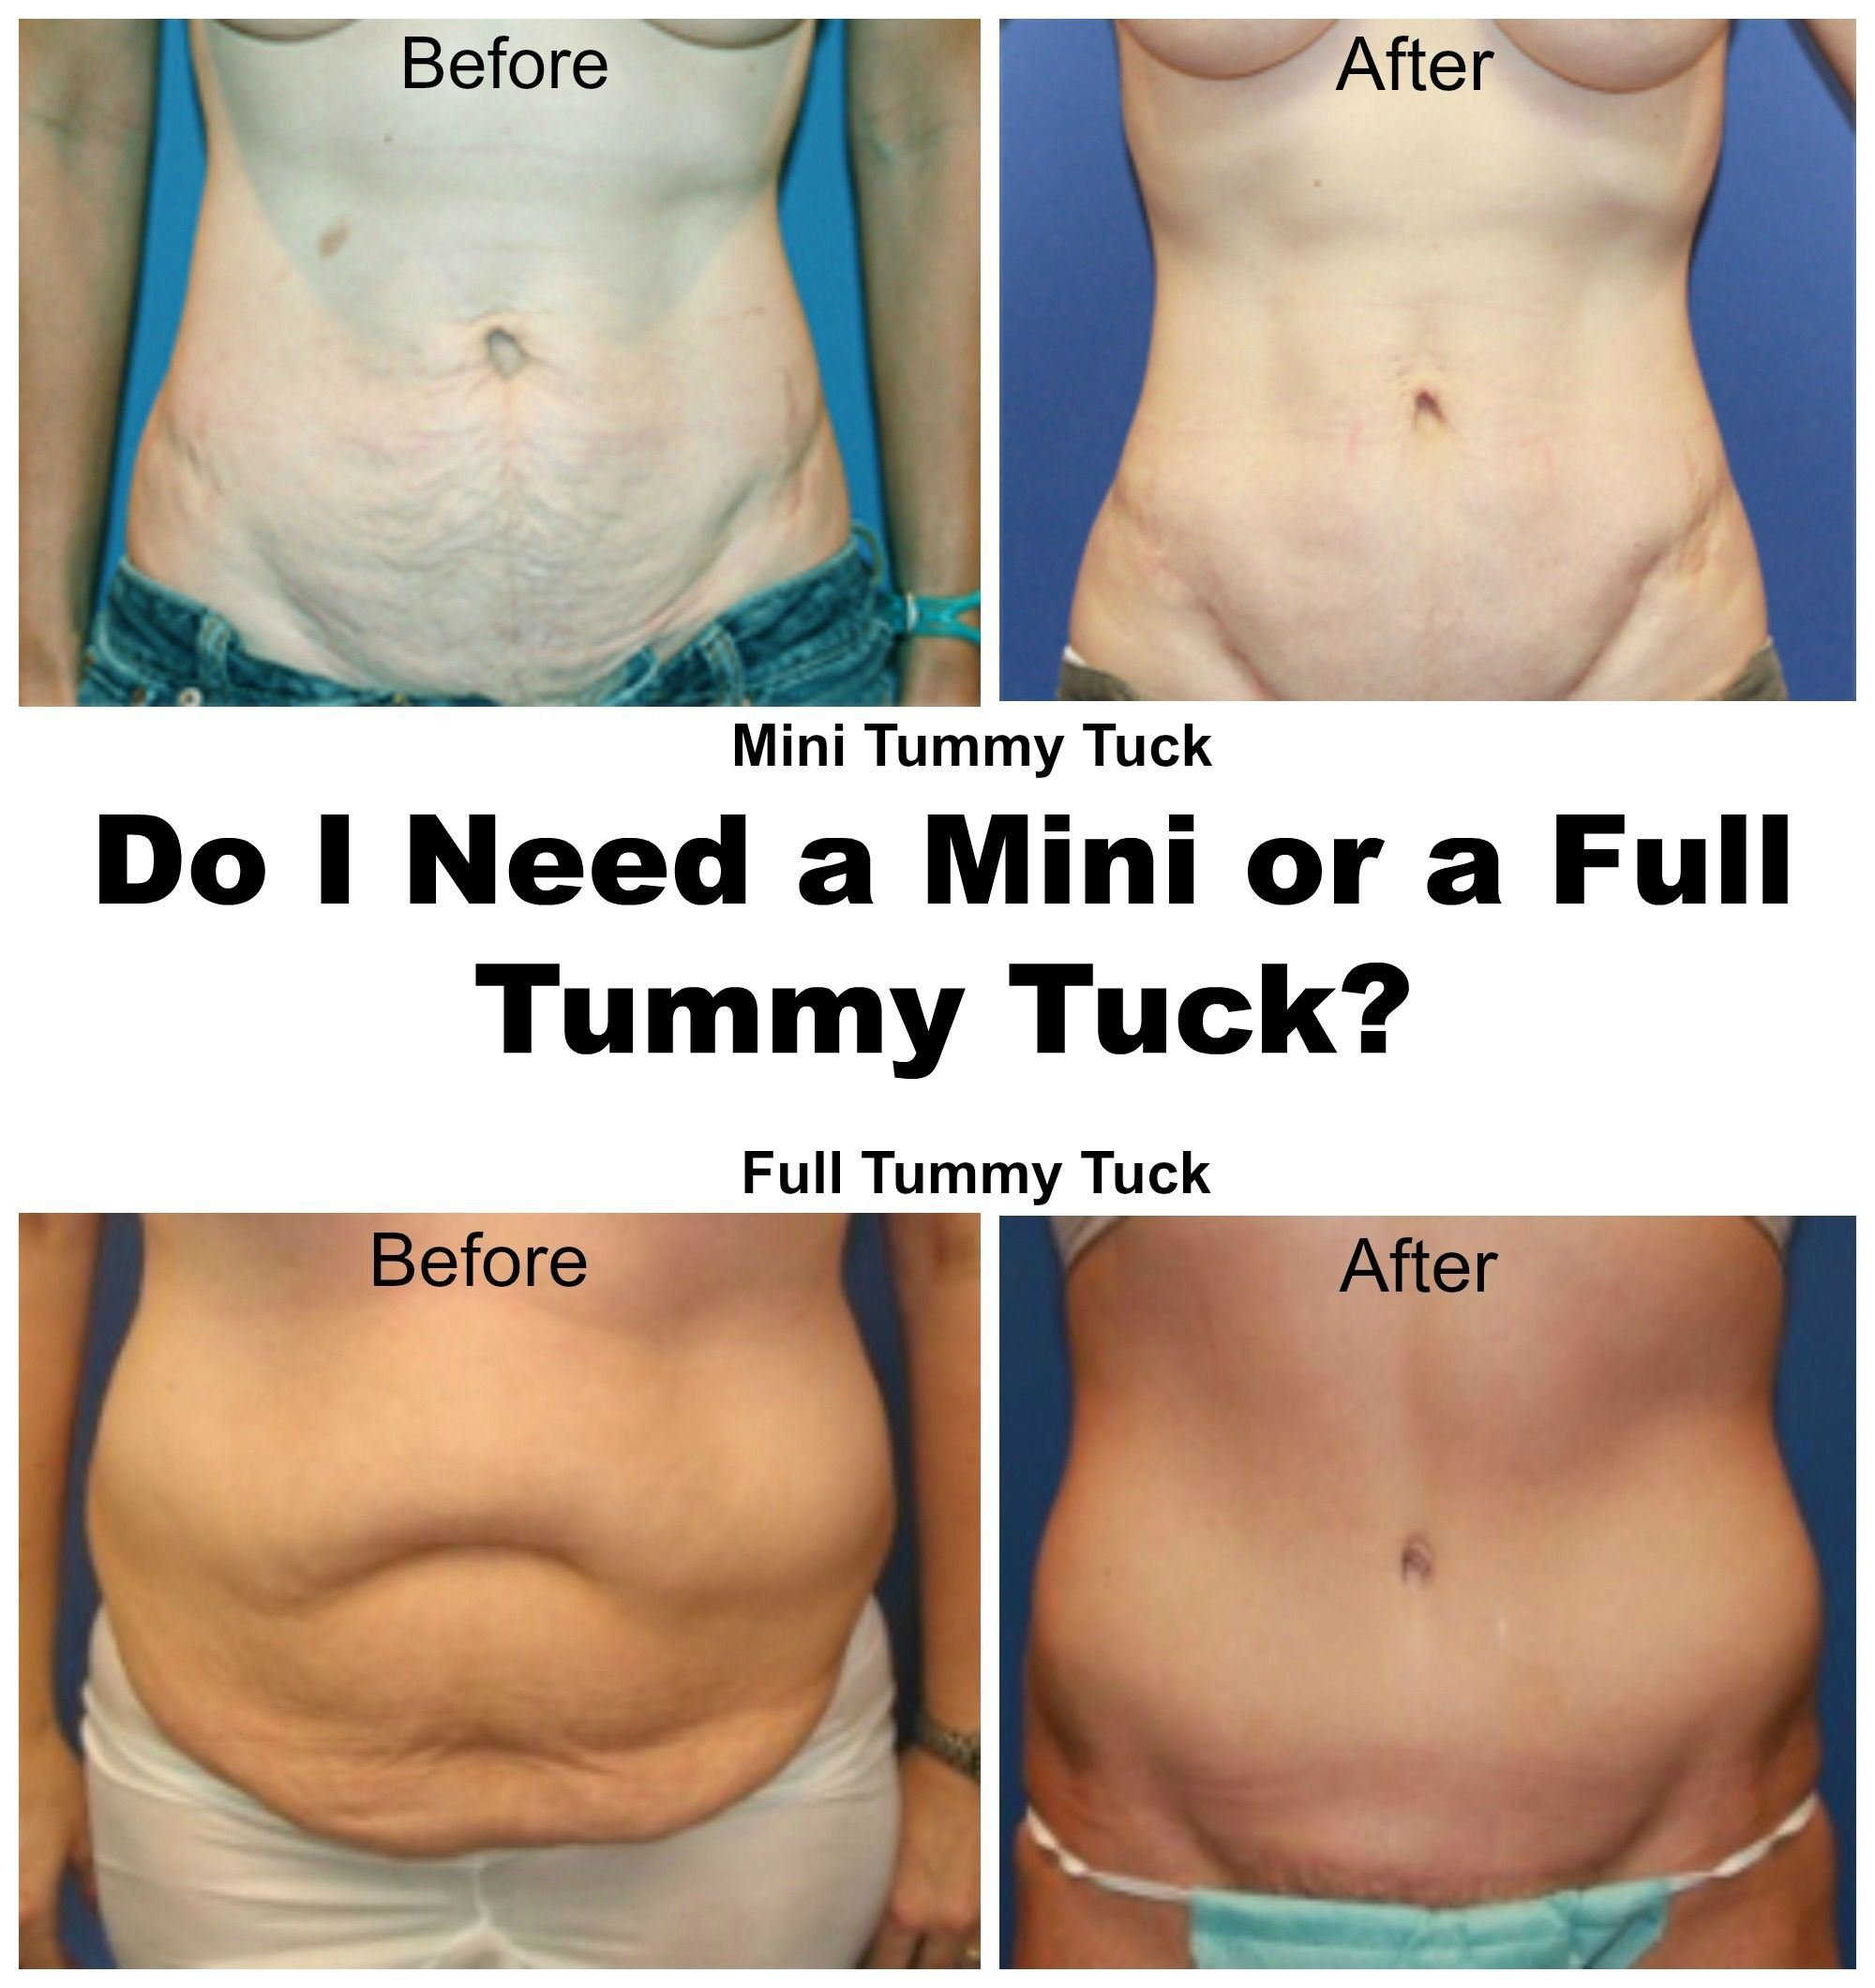 Mini Tummy Tuck Photos Virginia Plastic Surgery